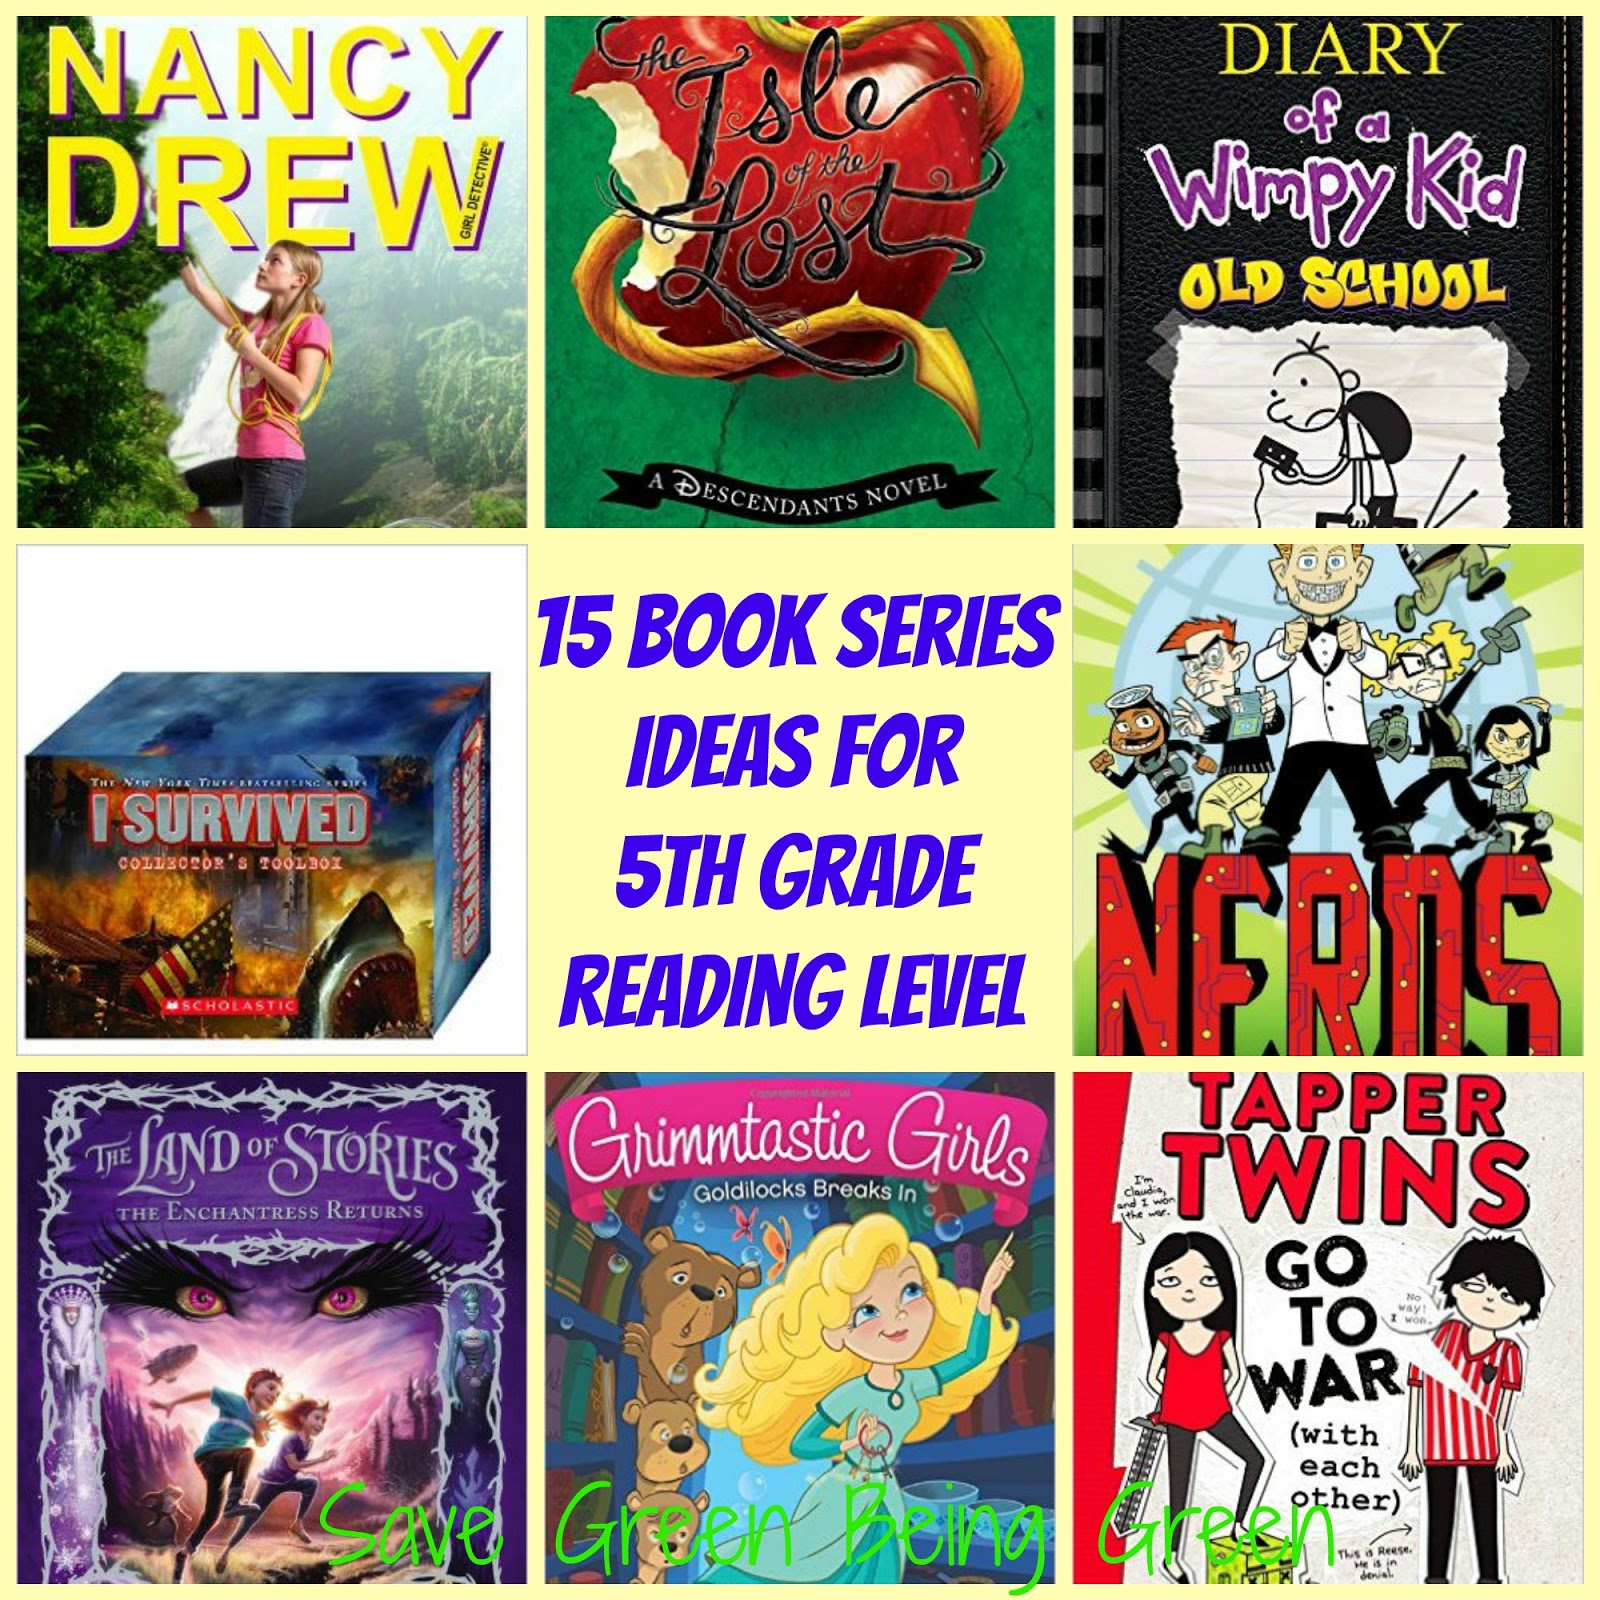 example of 5th grade reading level